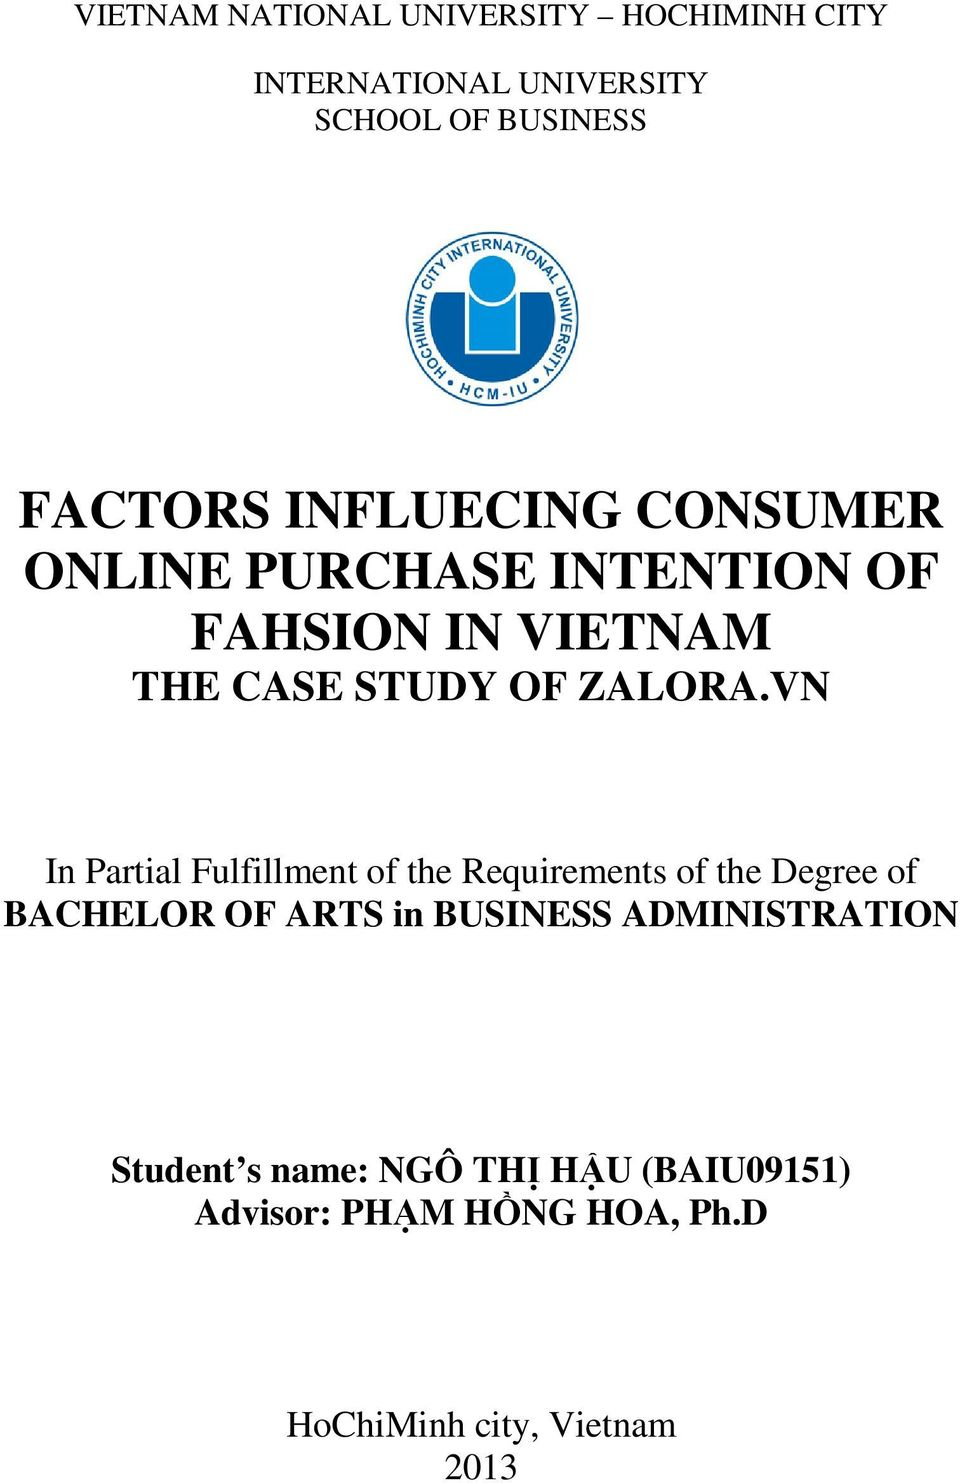 dissertation consumer intention return I declare that all the work in this dissertation is entirely o how does following a celebrity on social media affect the consumer's purchase intention towards.